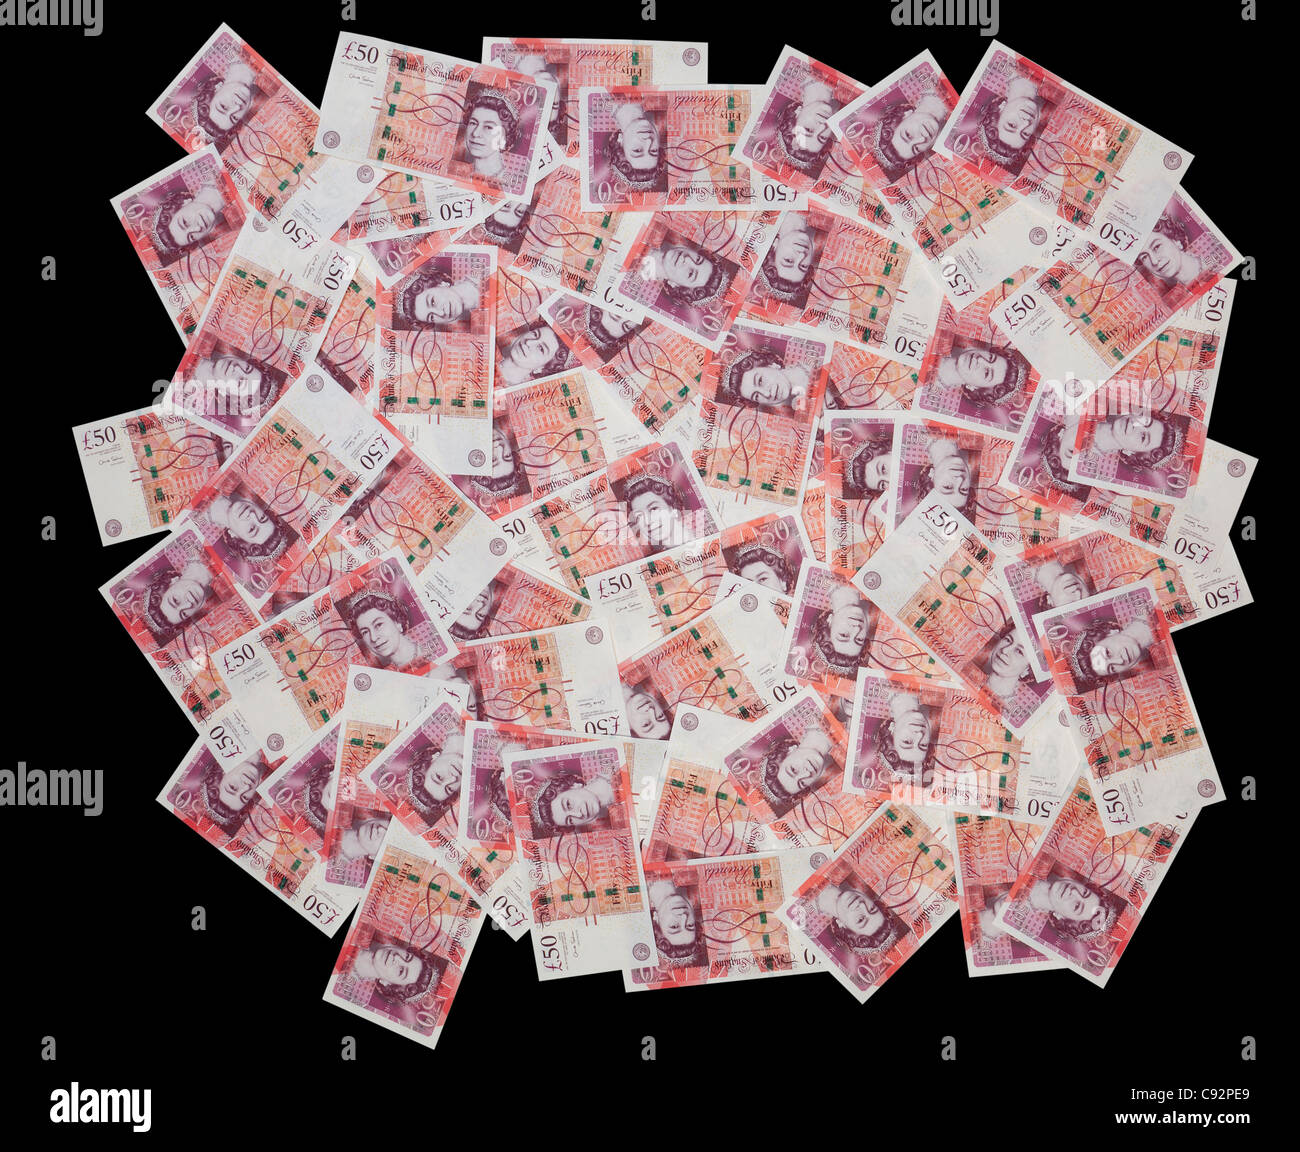 50 pound British currency bank notes £50 cash rich wealthy spread display - Stock Image